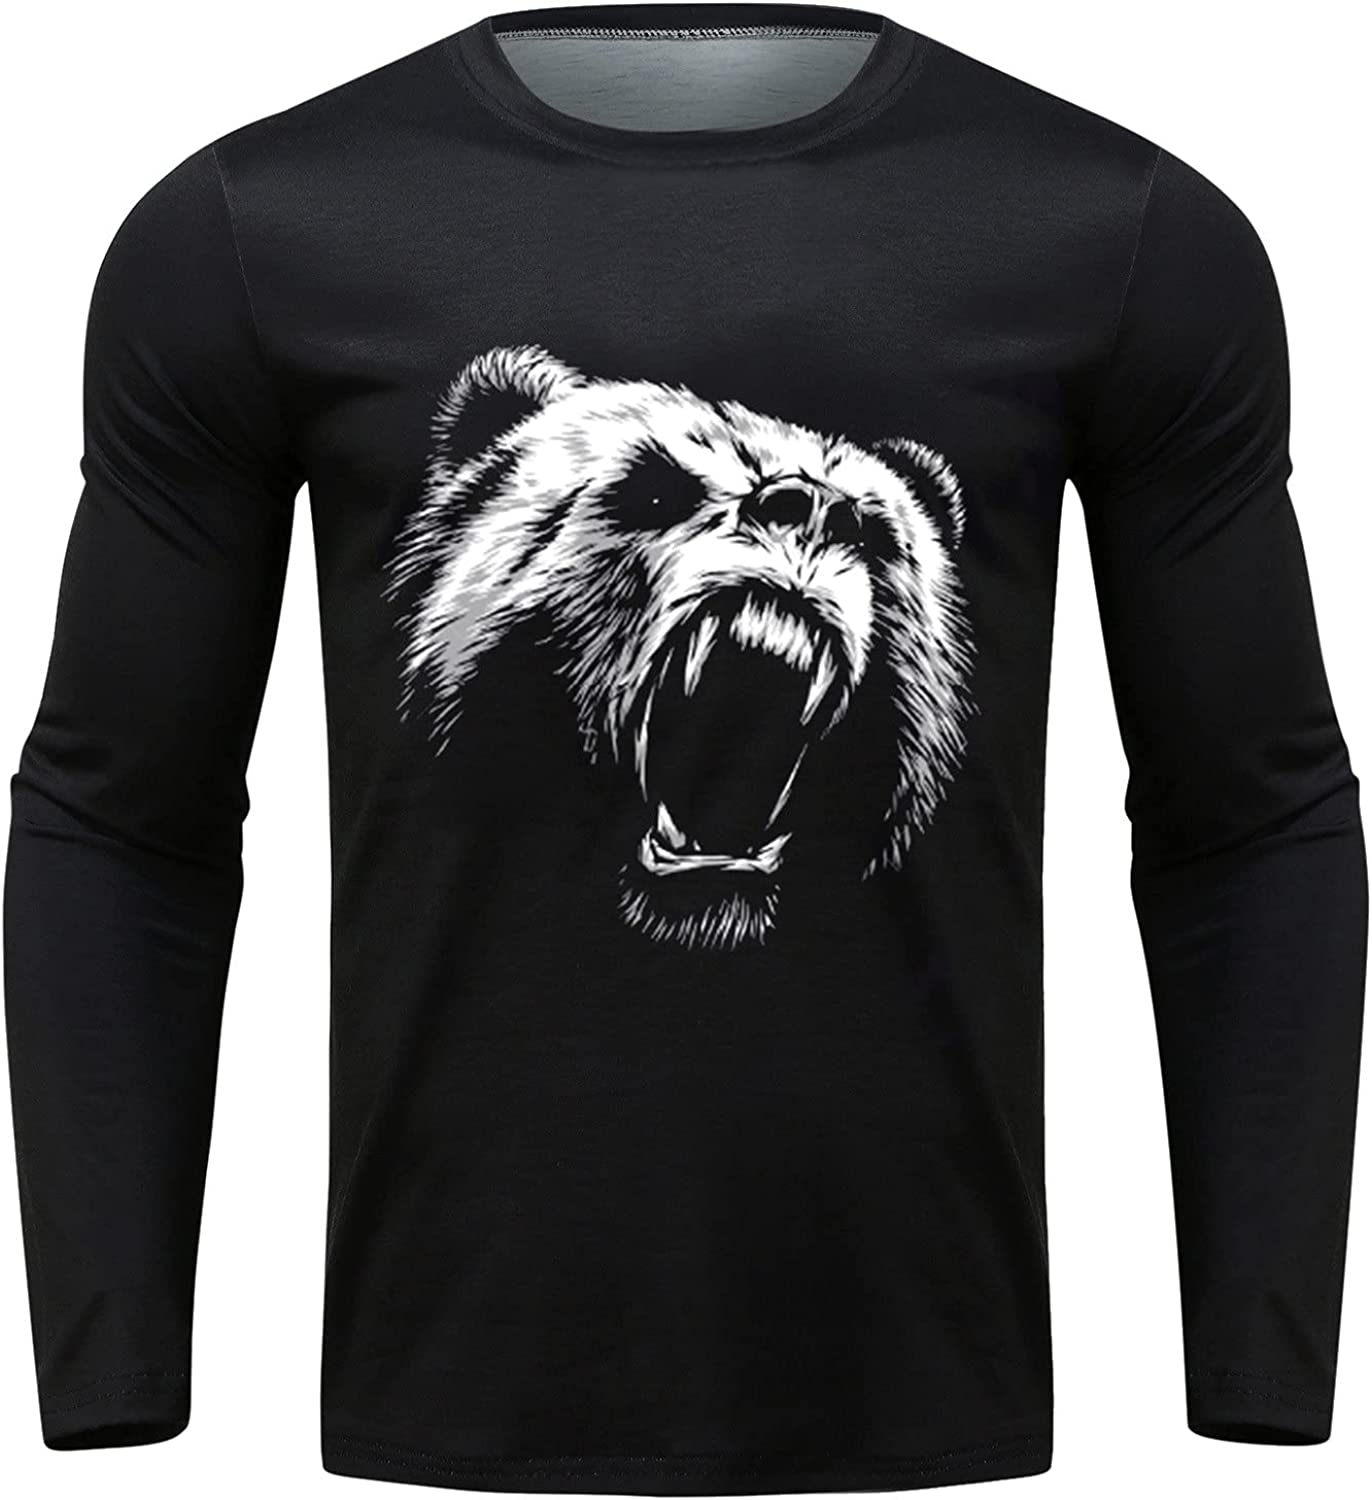 Men Lightweight Graphic T-Shirt Casual Long Sleeve Cotton Tee Fashion Muscle Gym Workout Tops Crewneck Shirts Blouse